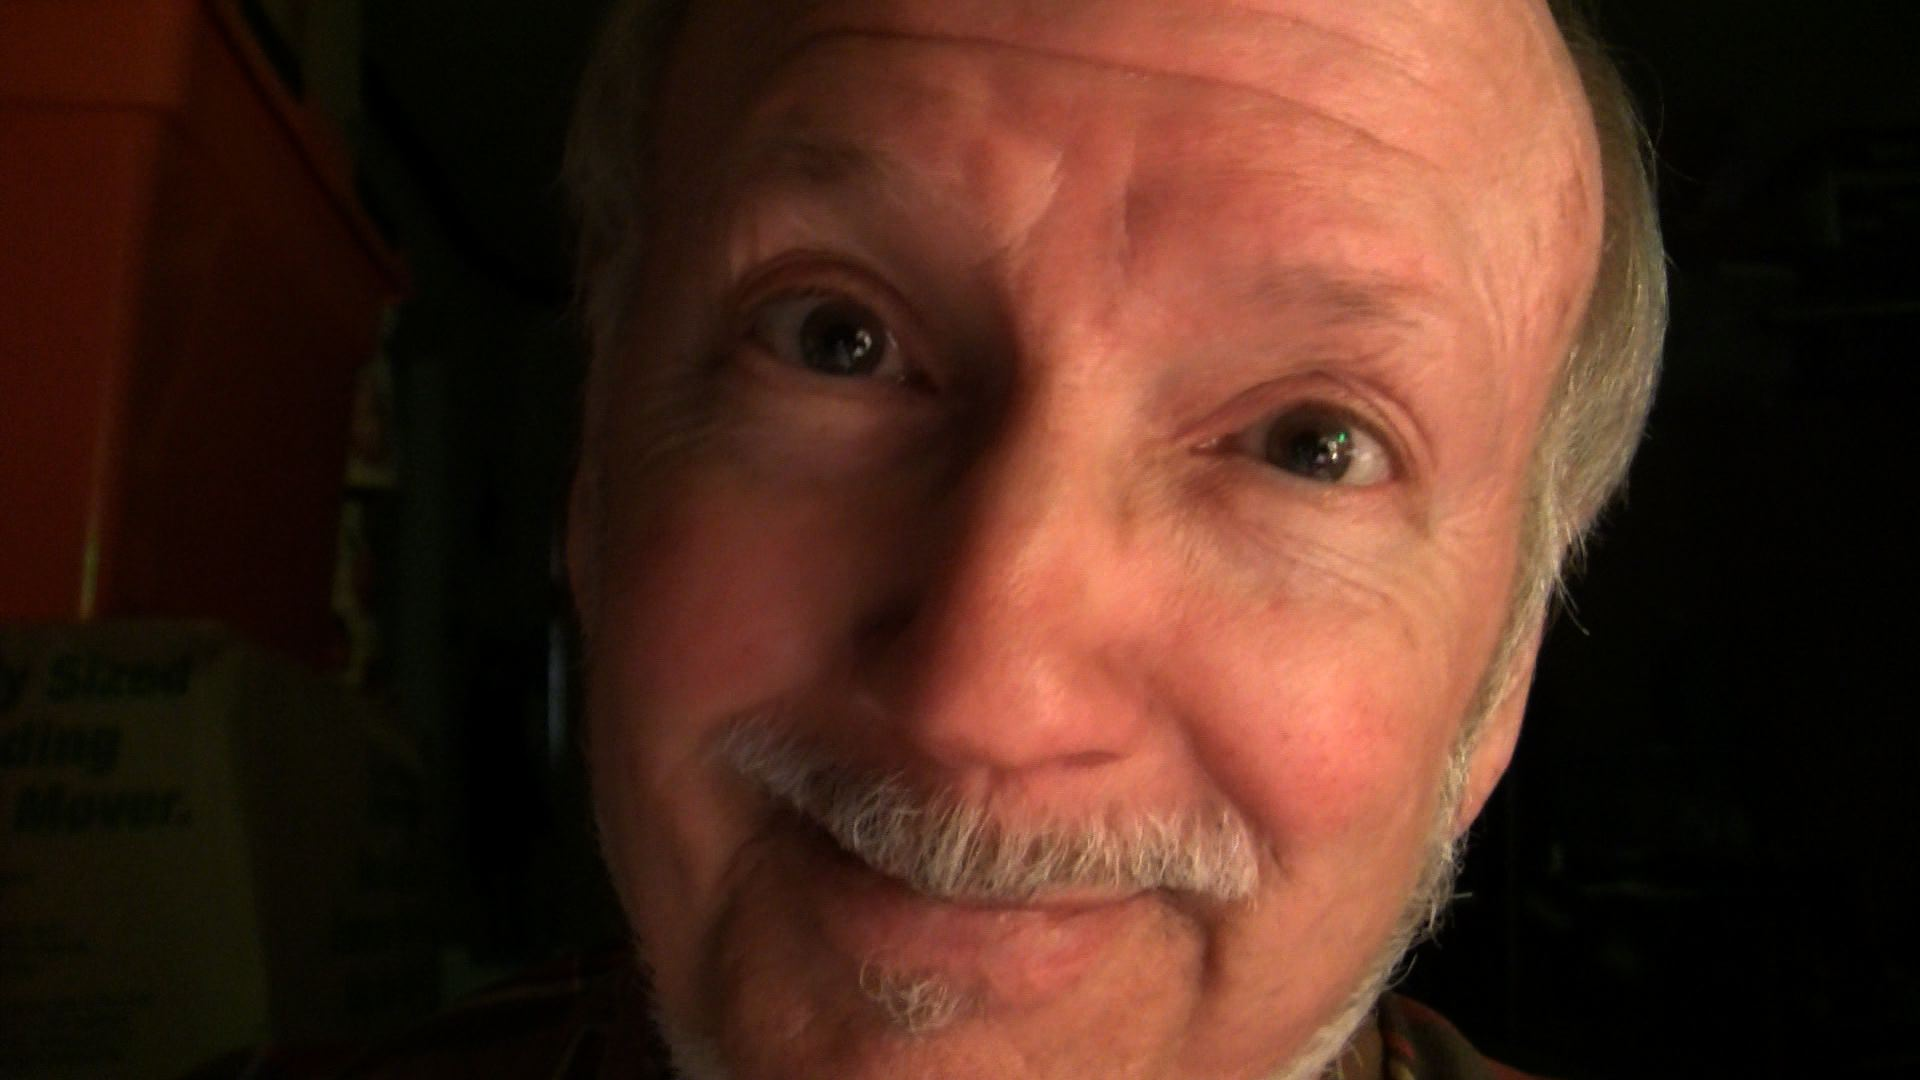 """Artwork for """"WHO'S IT ALL ABOUT, SELFIE?"""" [VIDEO] by Loose Bruce Kerr"""